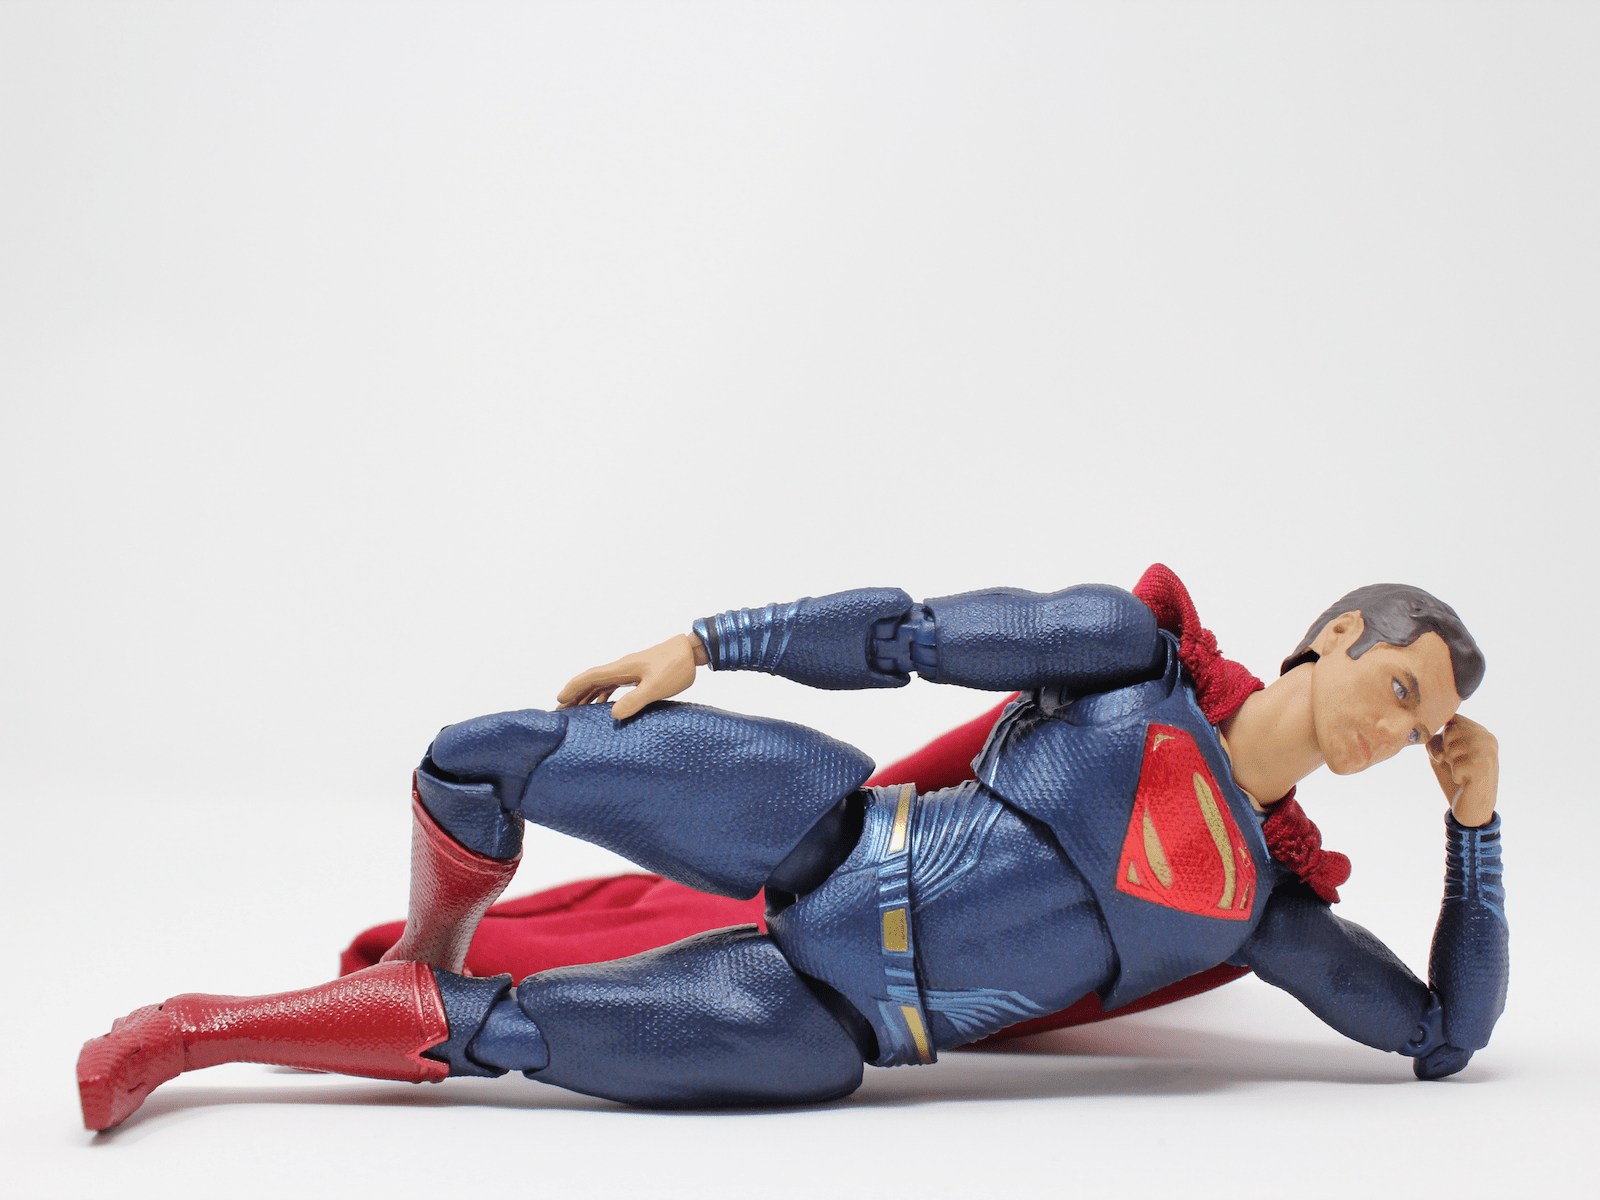 A superhero doll laying down